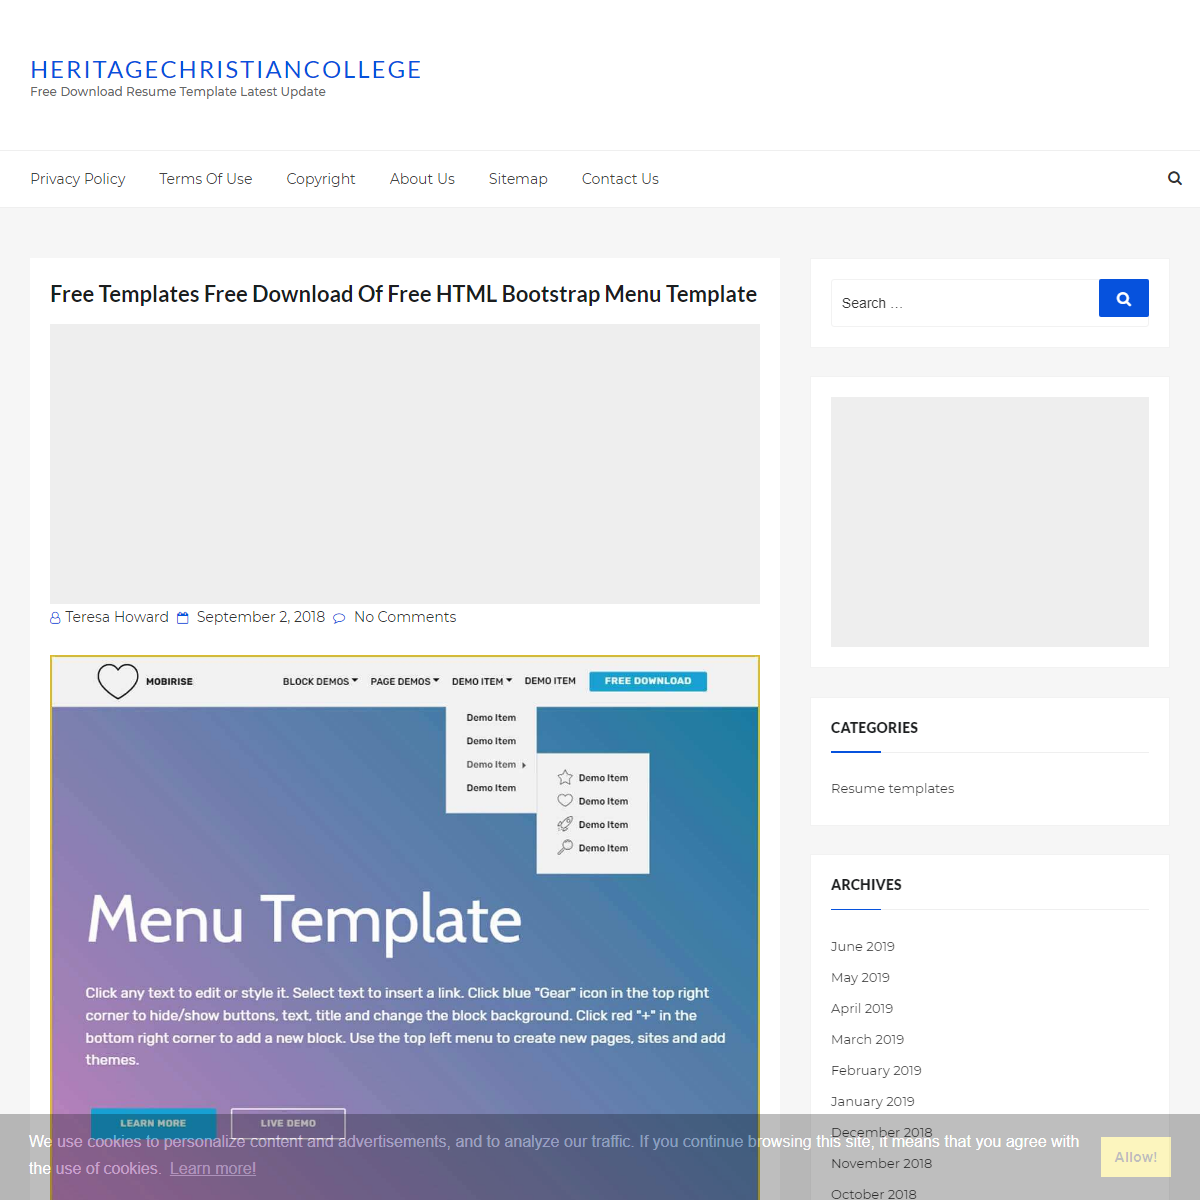 Free Templates Free Download Of Free HTML Bootstrap Menu Template - Heritagechristiancollege